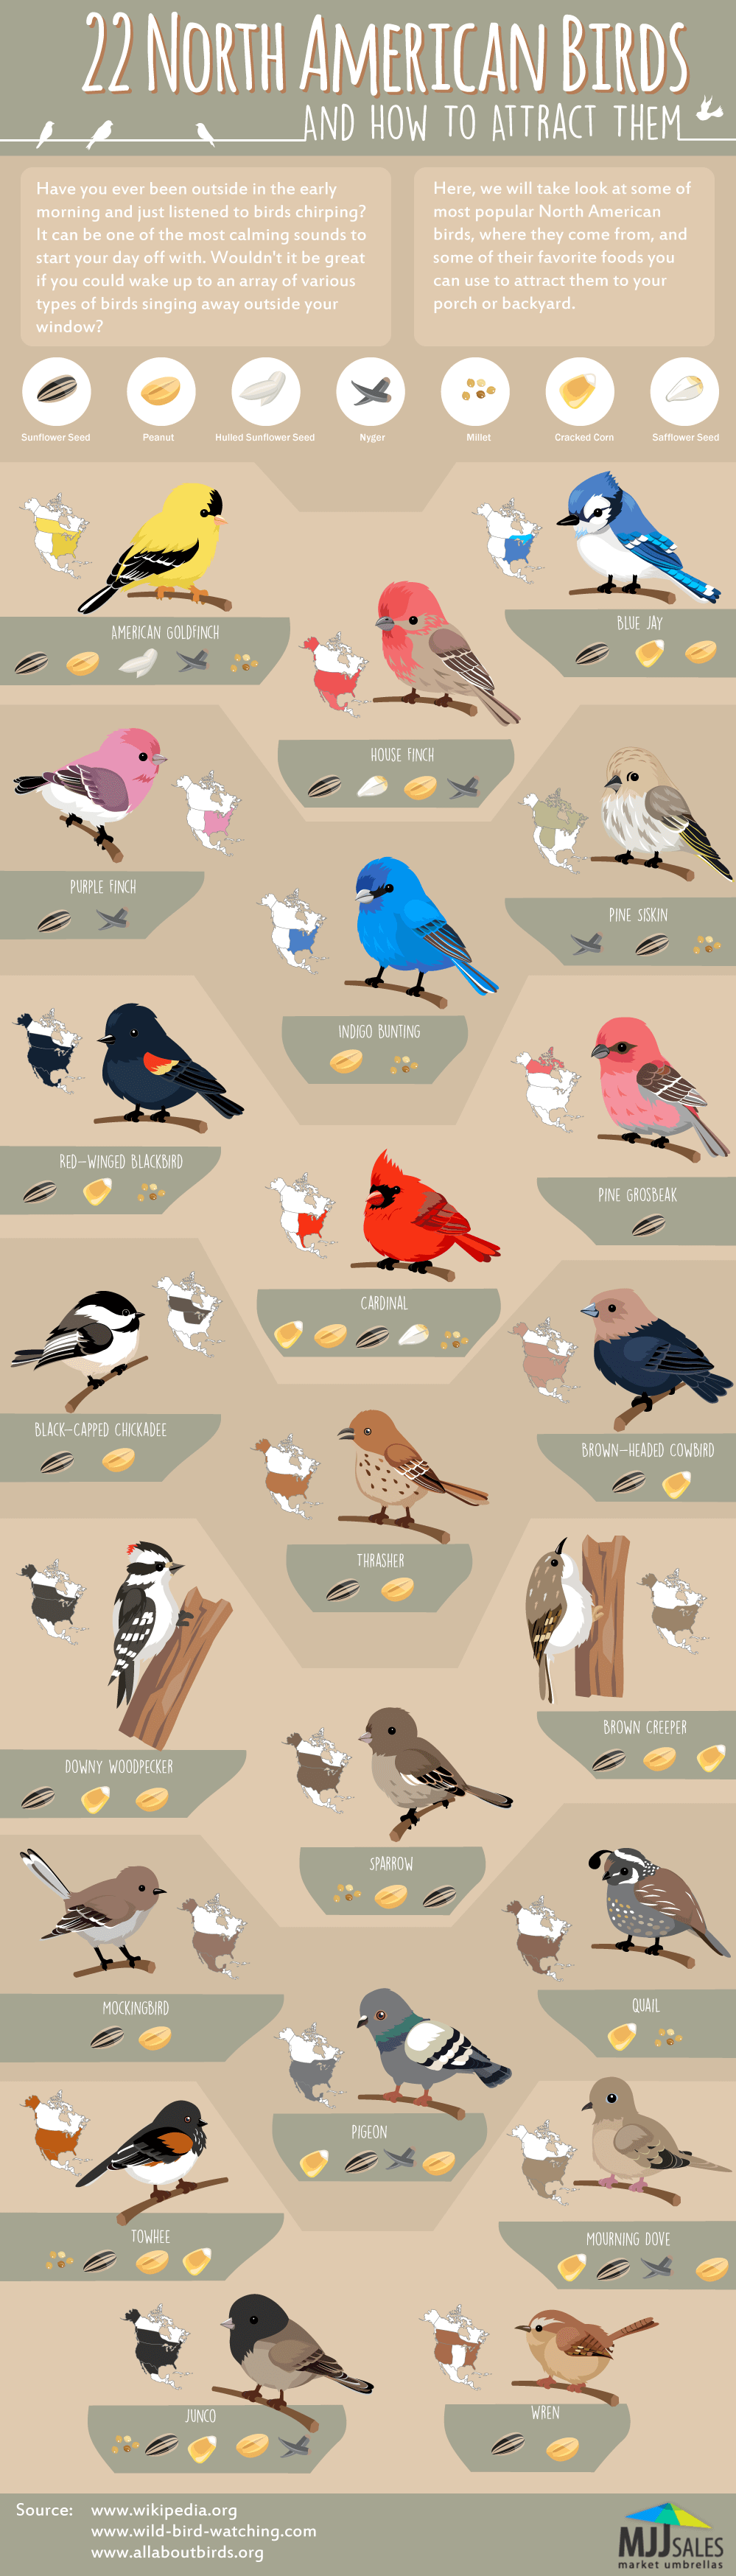 This Infographic From Mjj S Shows Off A Collection Of 22 The Most Por Birds Found In North America You Can Also See What Regions